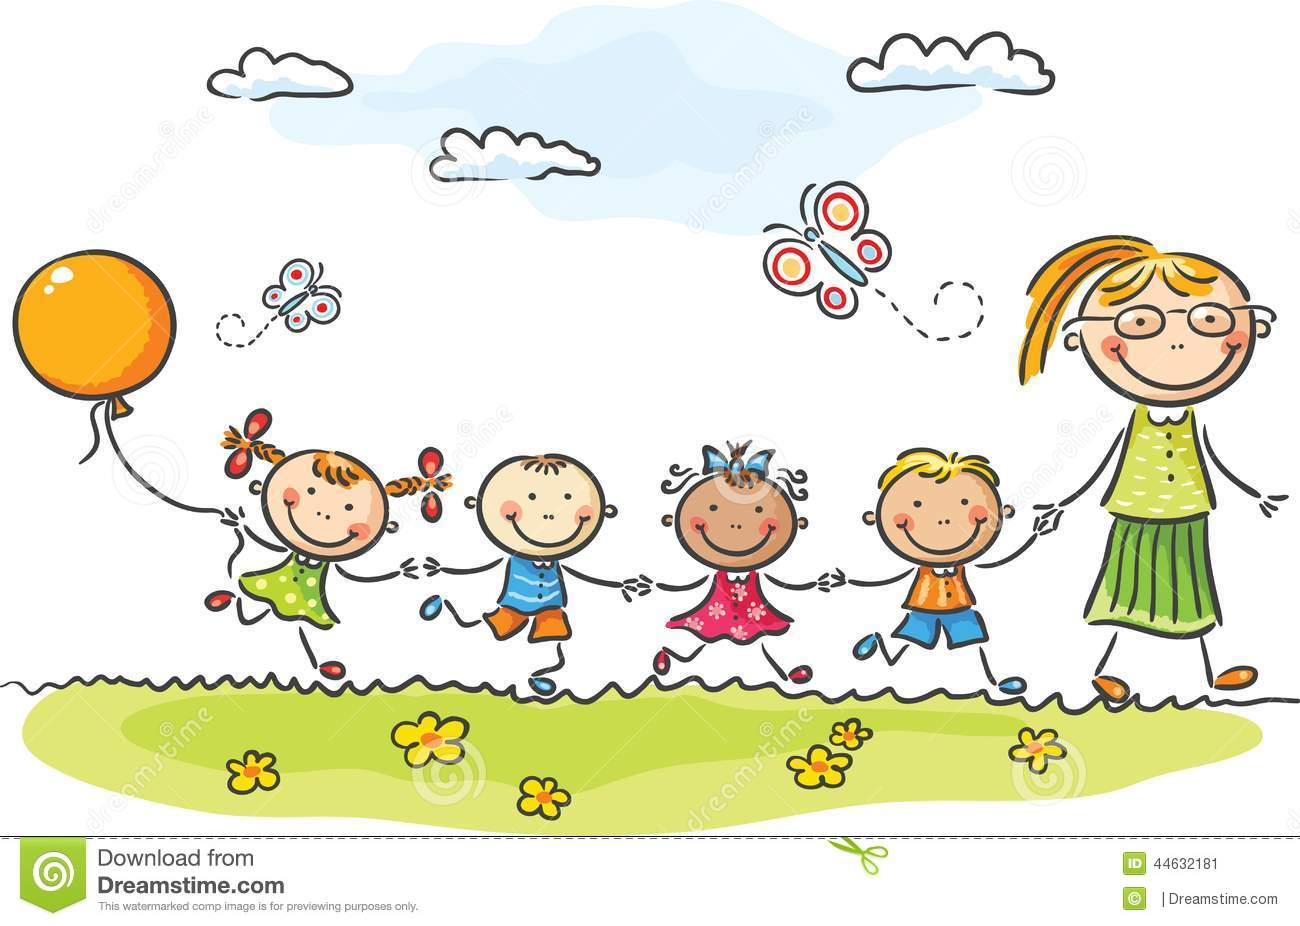 worksheet Kindergarten kindergarten stock illustrations 30447 image